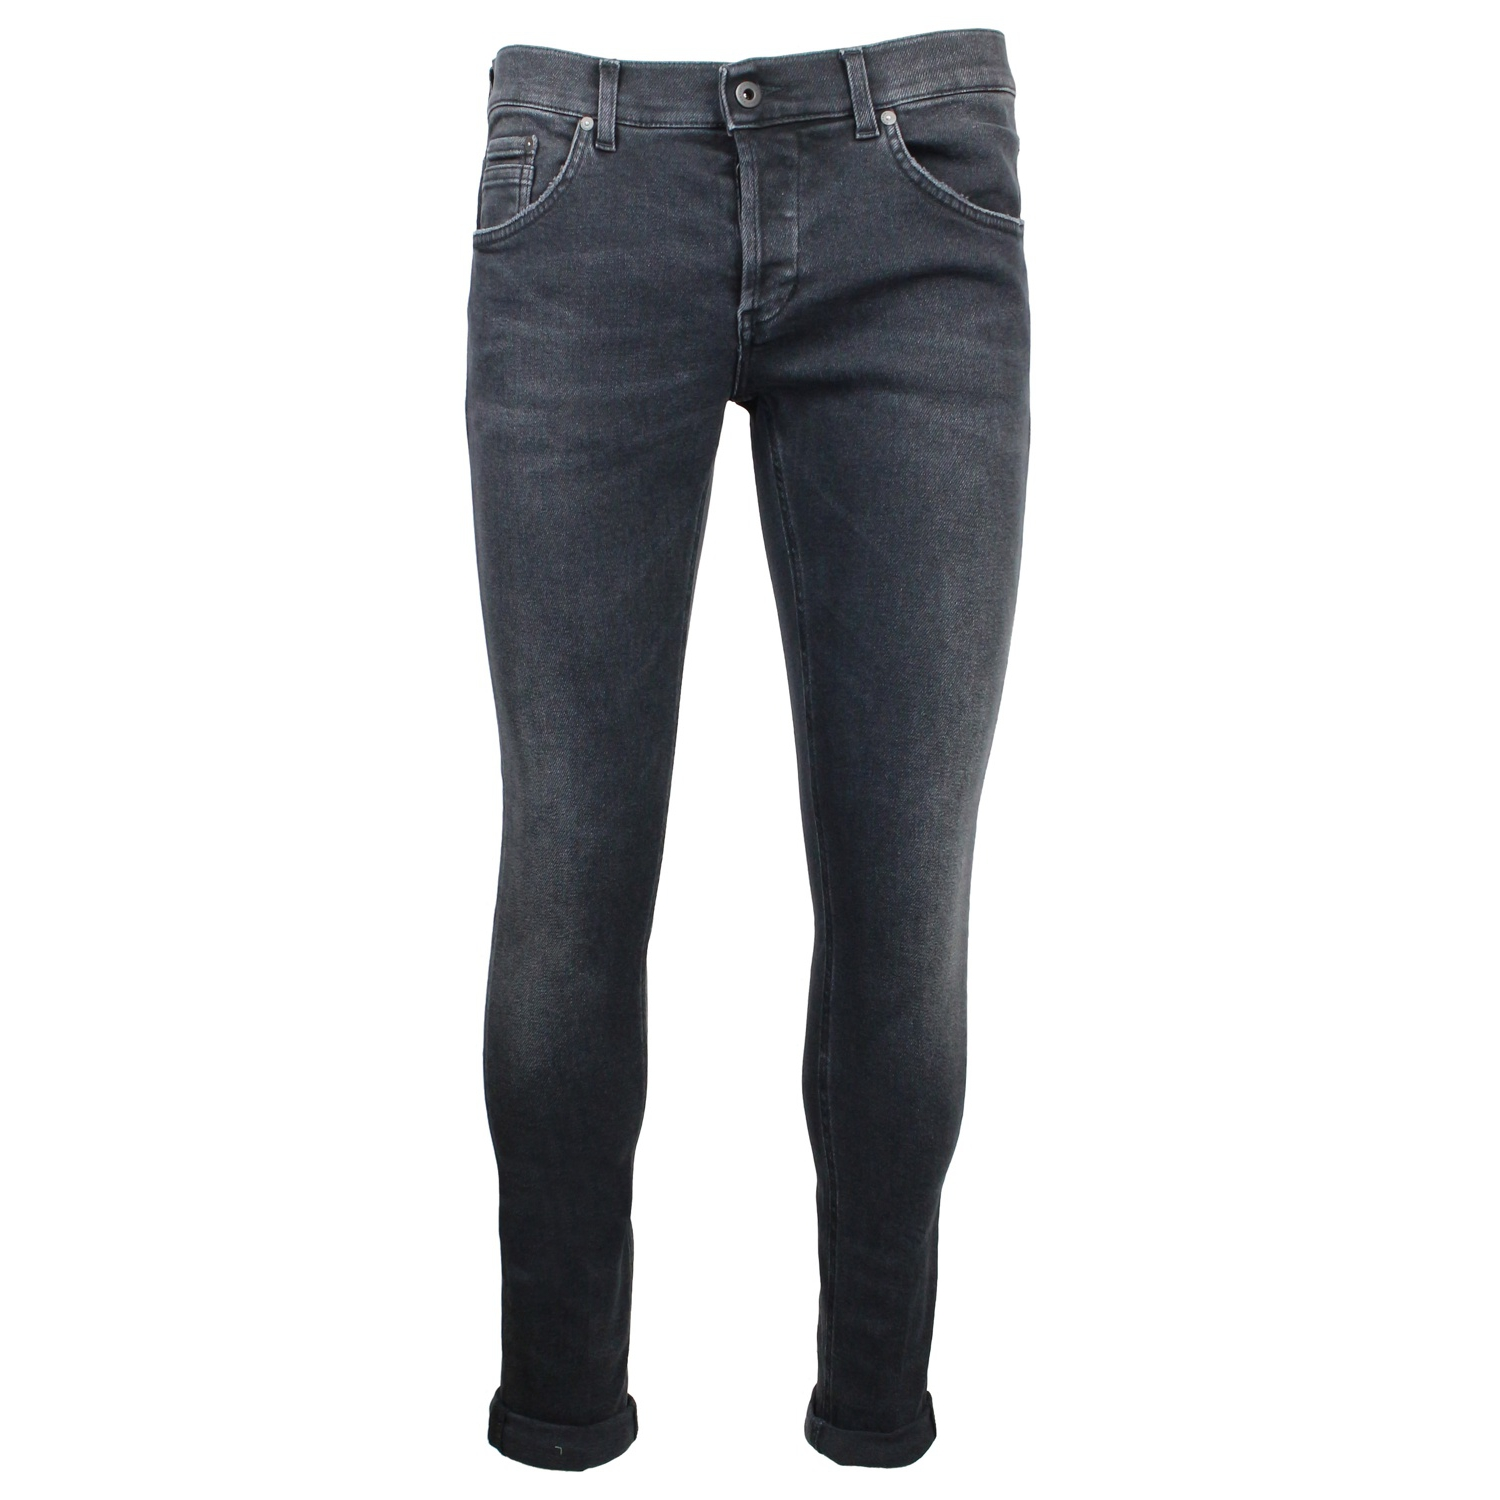 fbcd1497c2 JEANS RITCHIE SKINNY